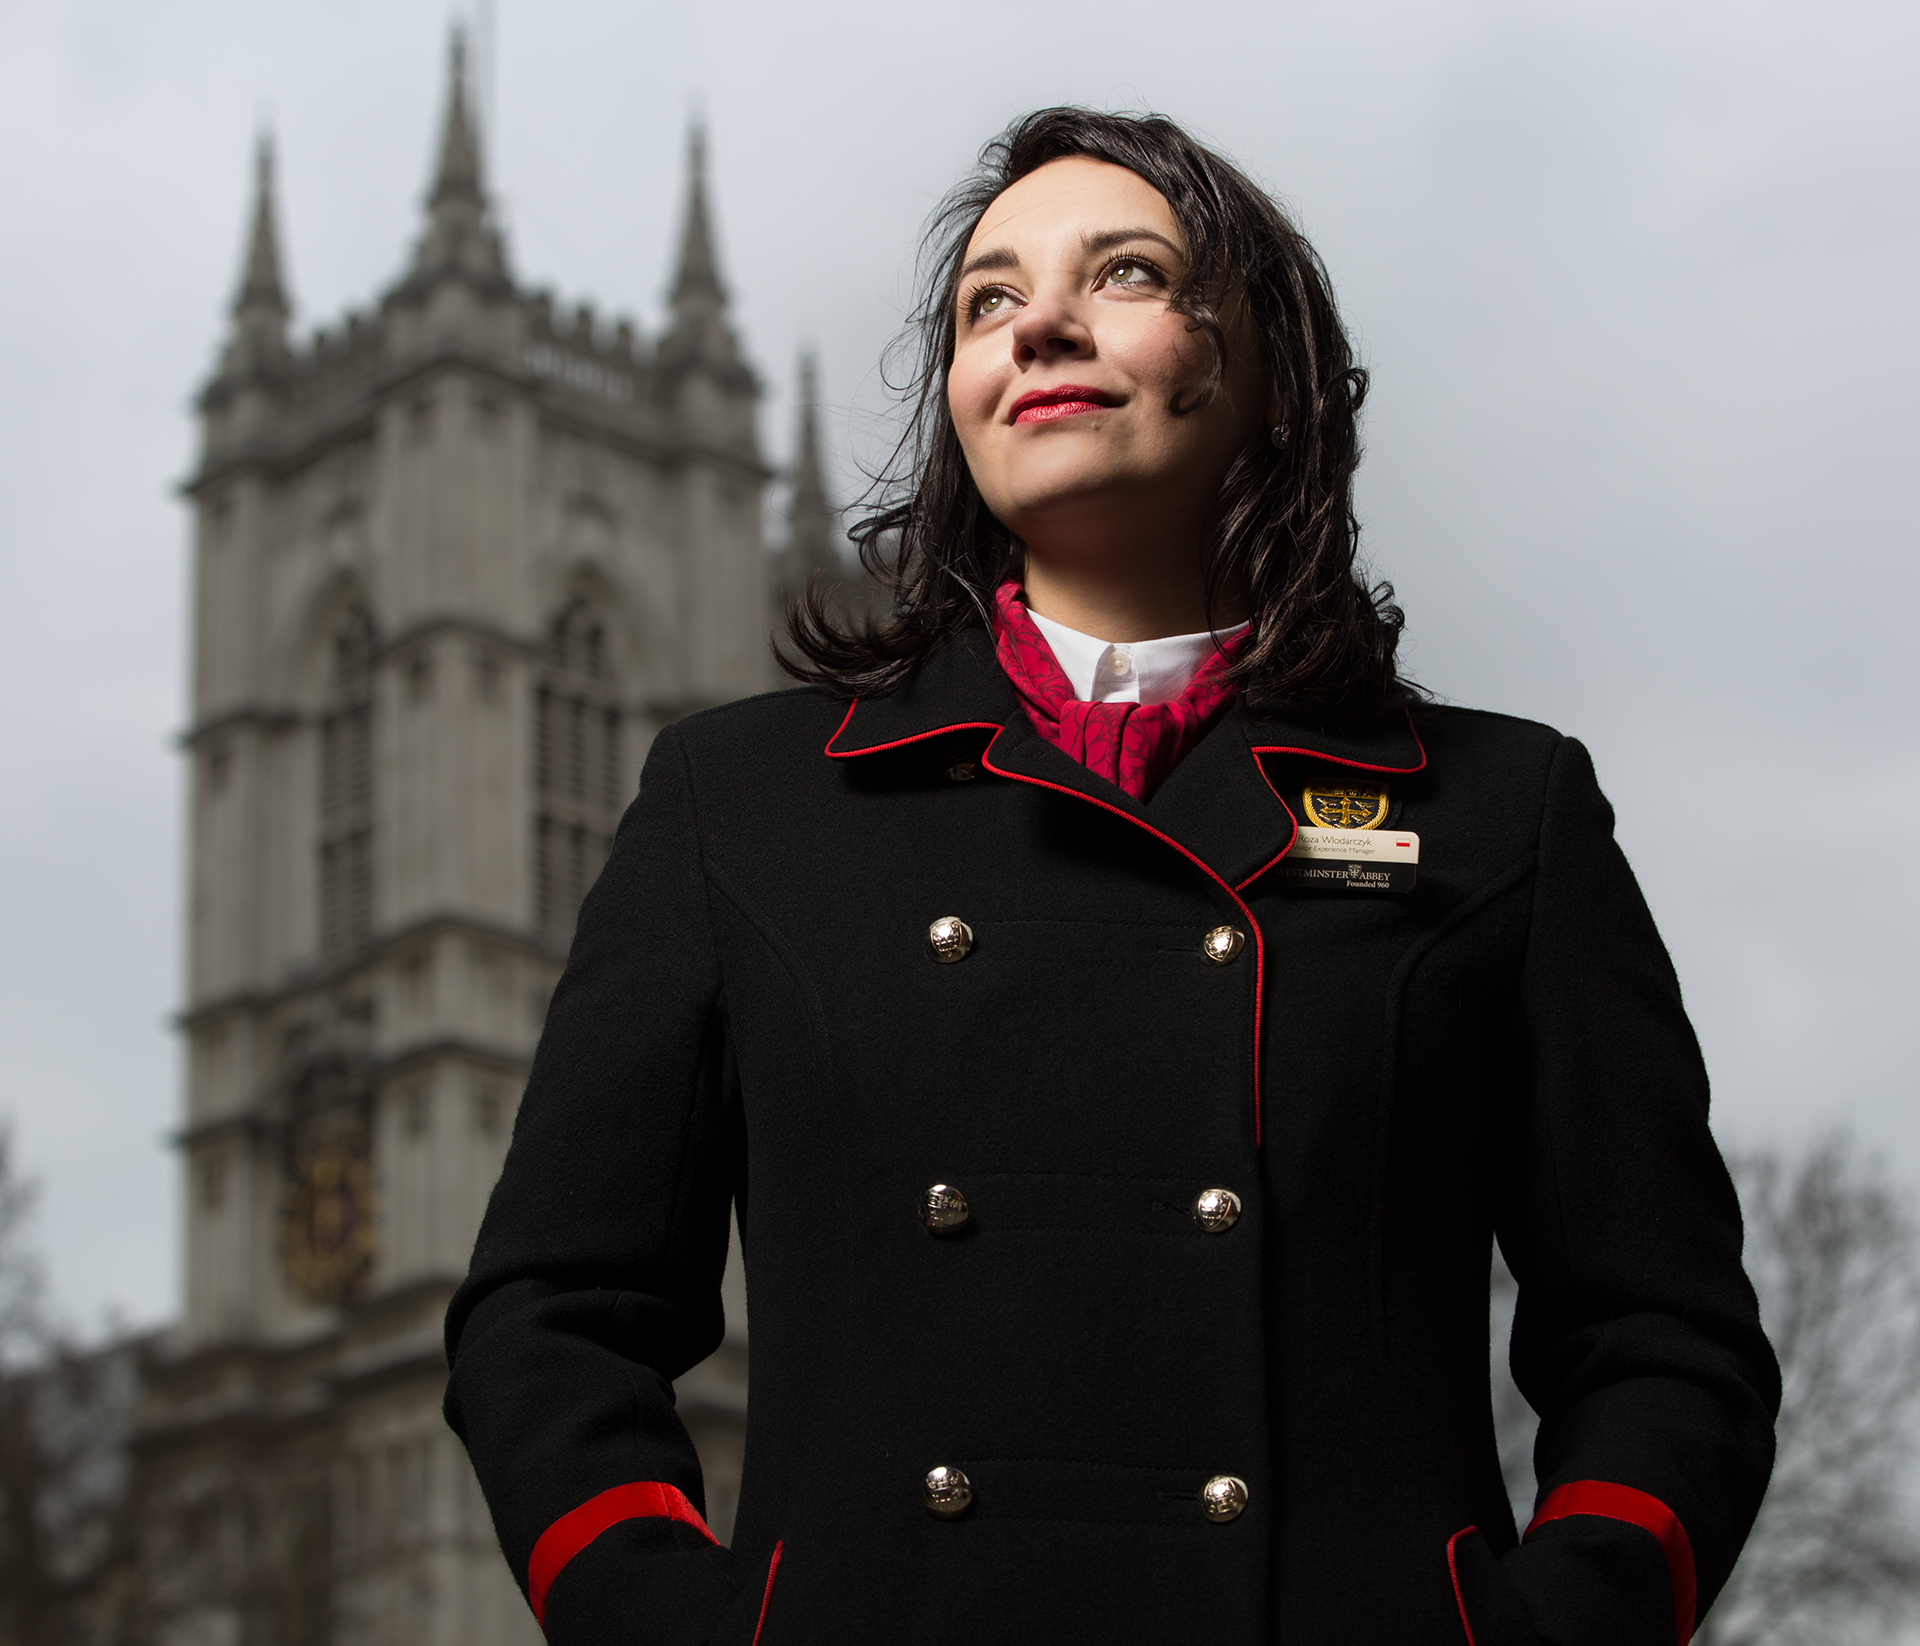 Róża Włodarczyk / Visitor Experience Manager at Westminister Abbey.